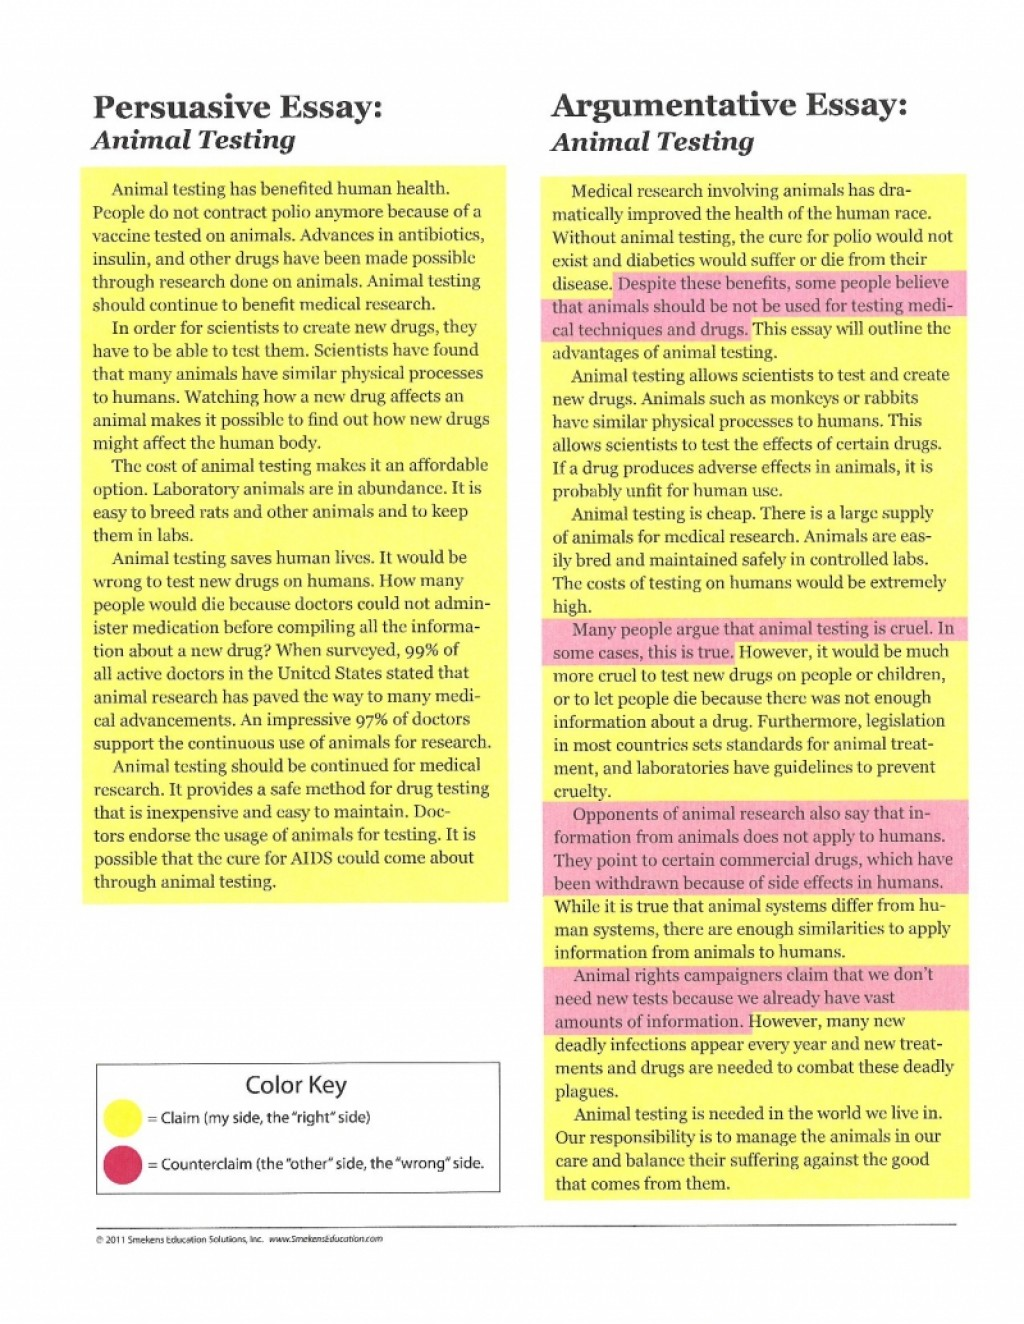 014 Sample Essays High School Middle Persuasive Essay Pers Arg Experience Free For Students Striking Scholarships Writing Prompts Large